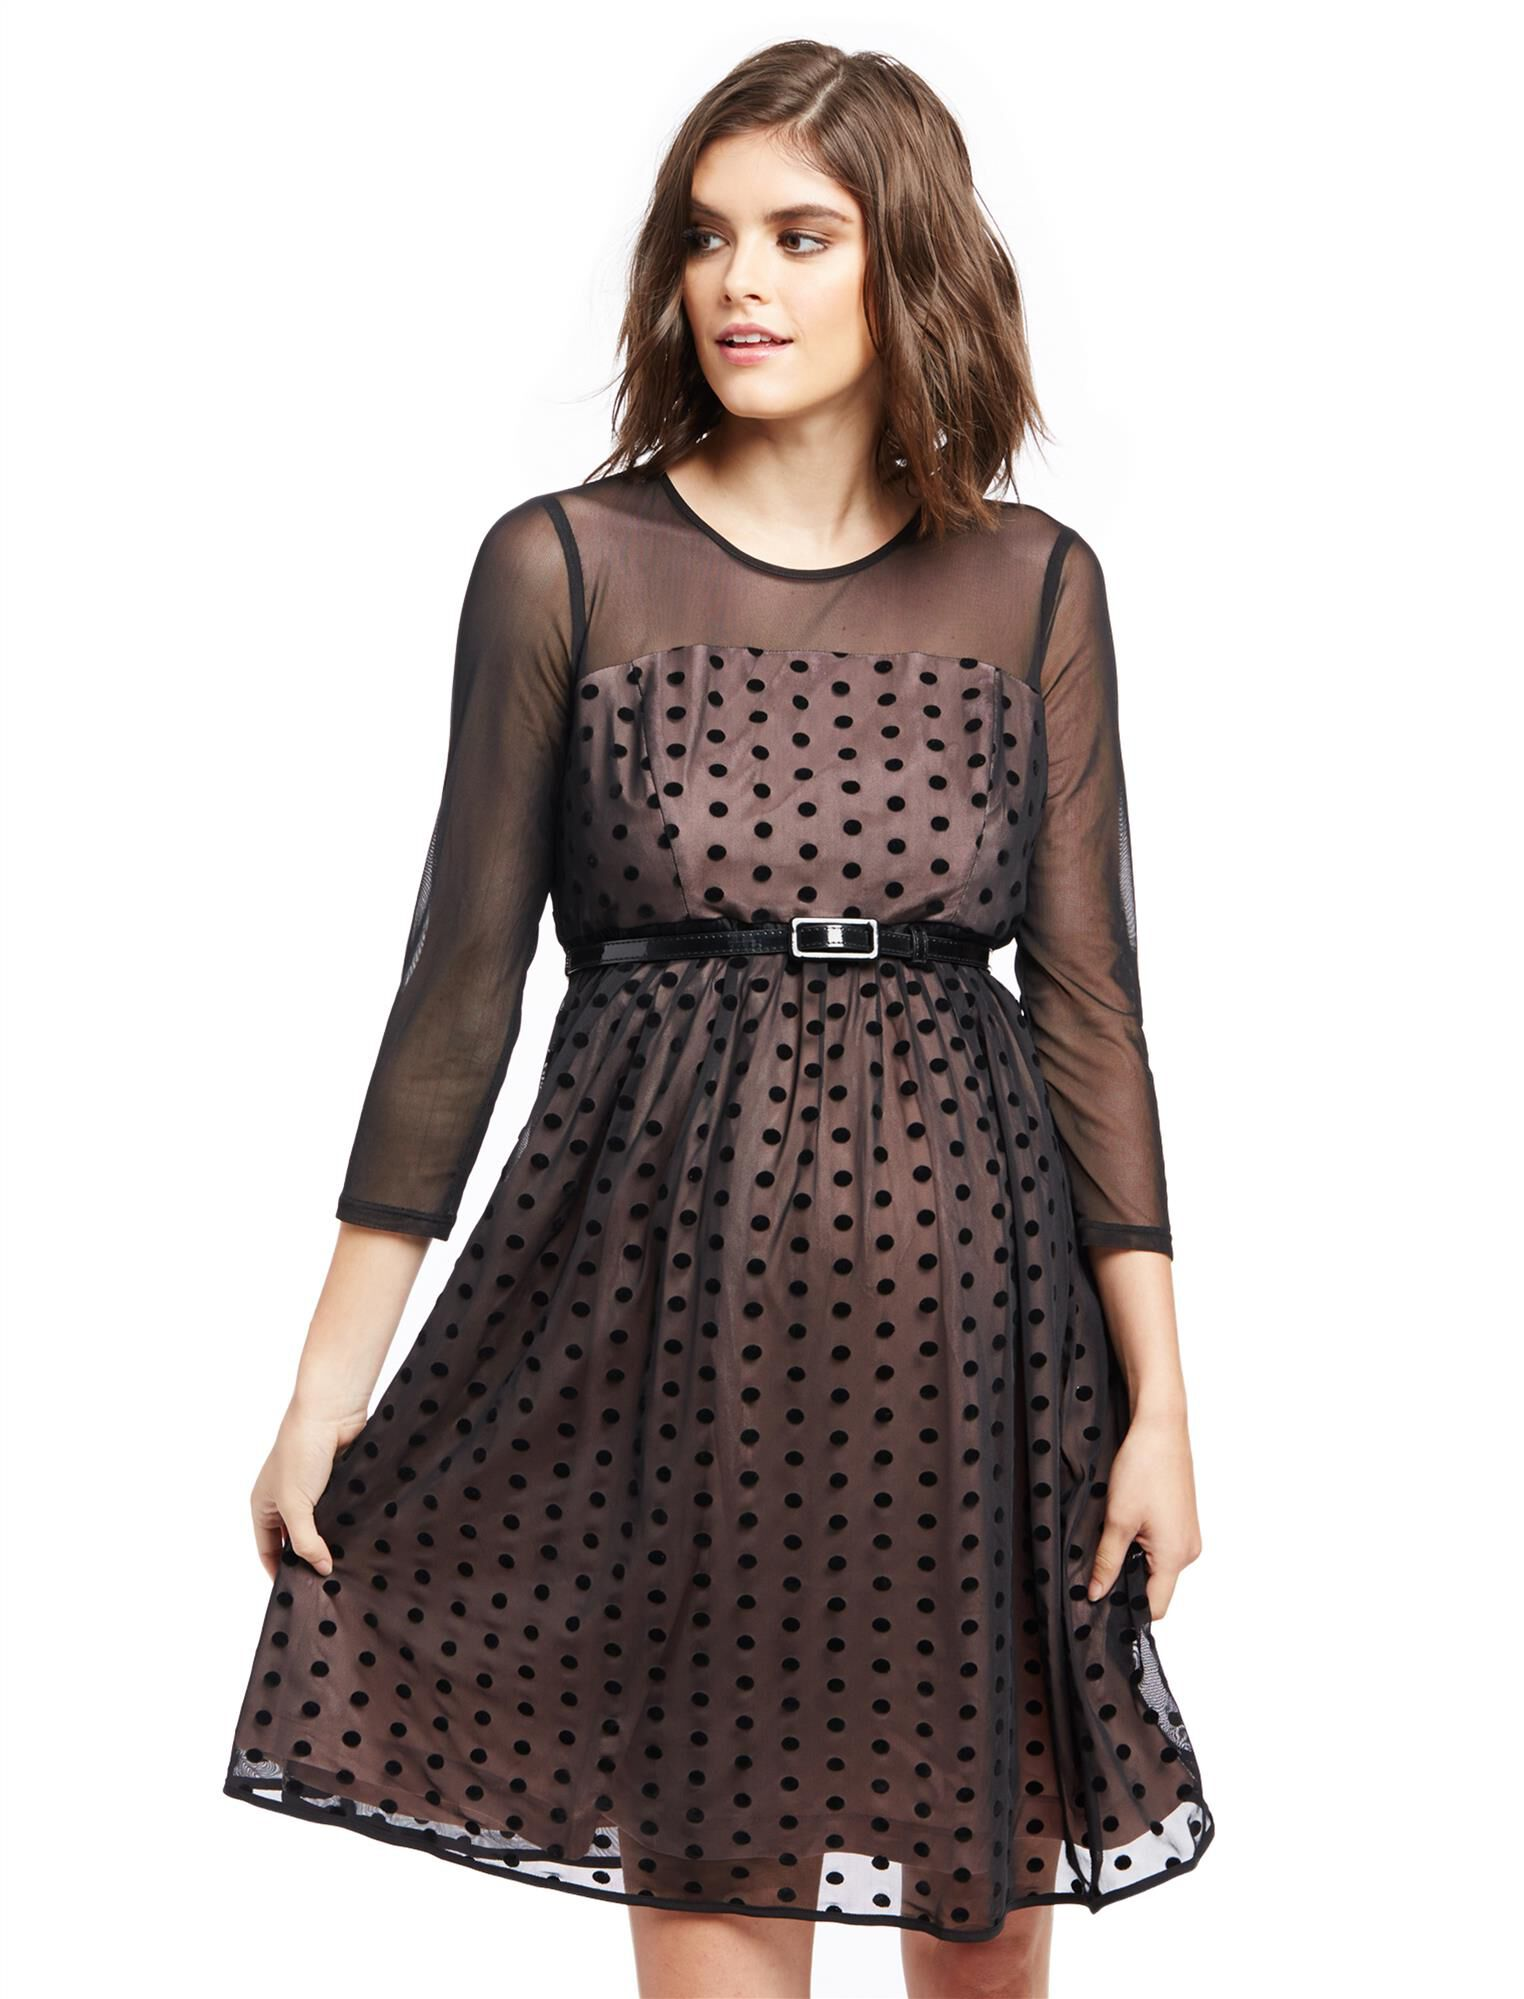 Vintage Maternity Clothing Styles 1910-1960 Mesh Dot Maternity Dress $29.99 AT vintagedancer.com